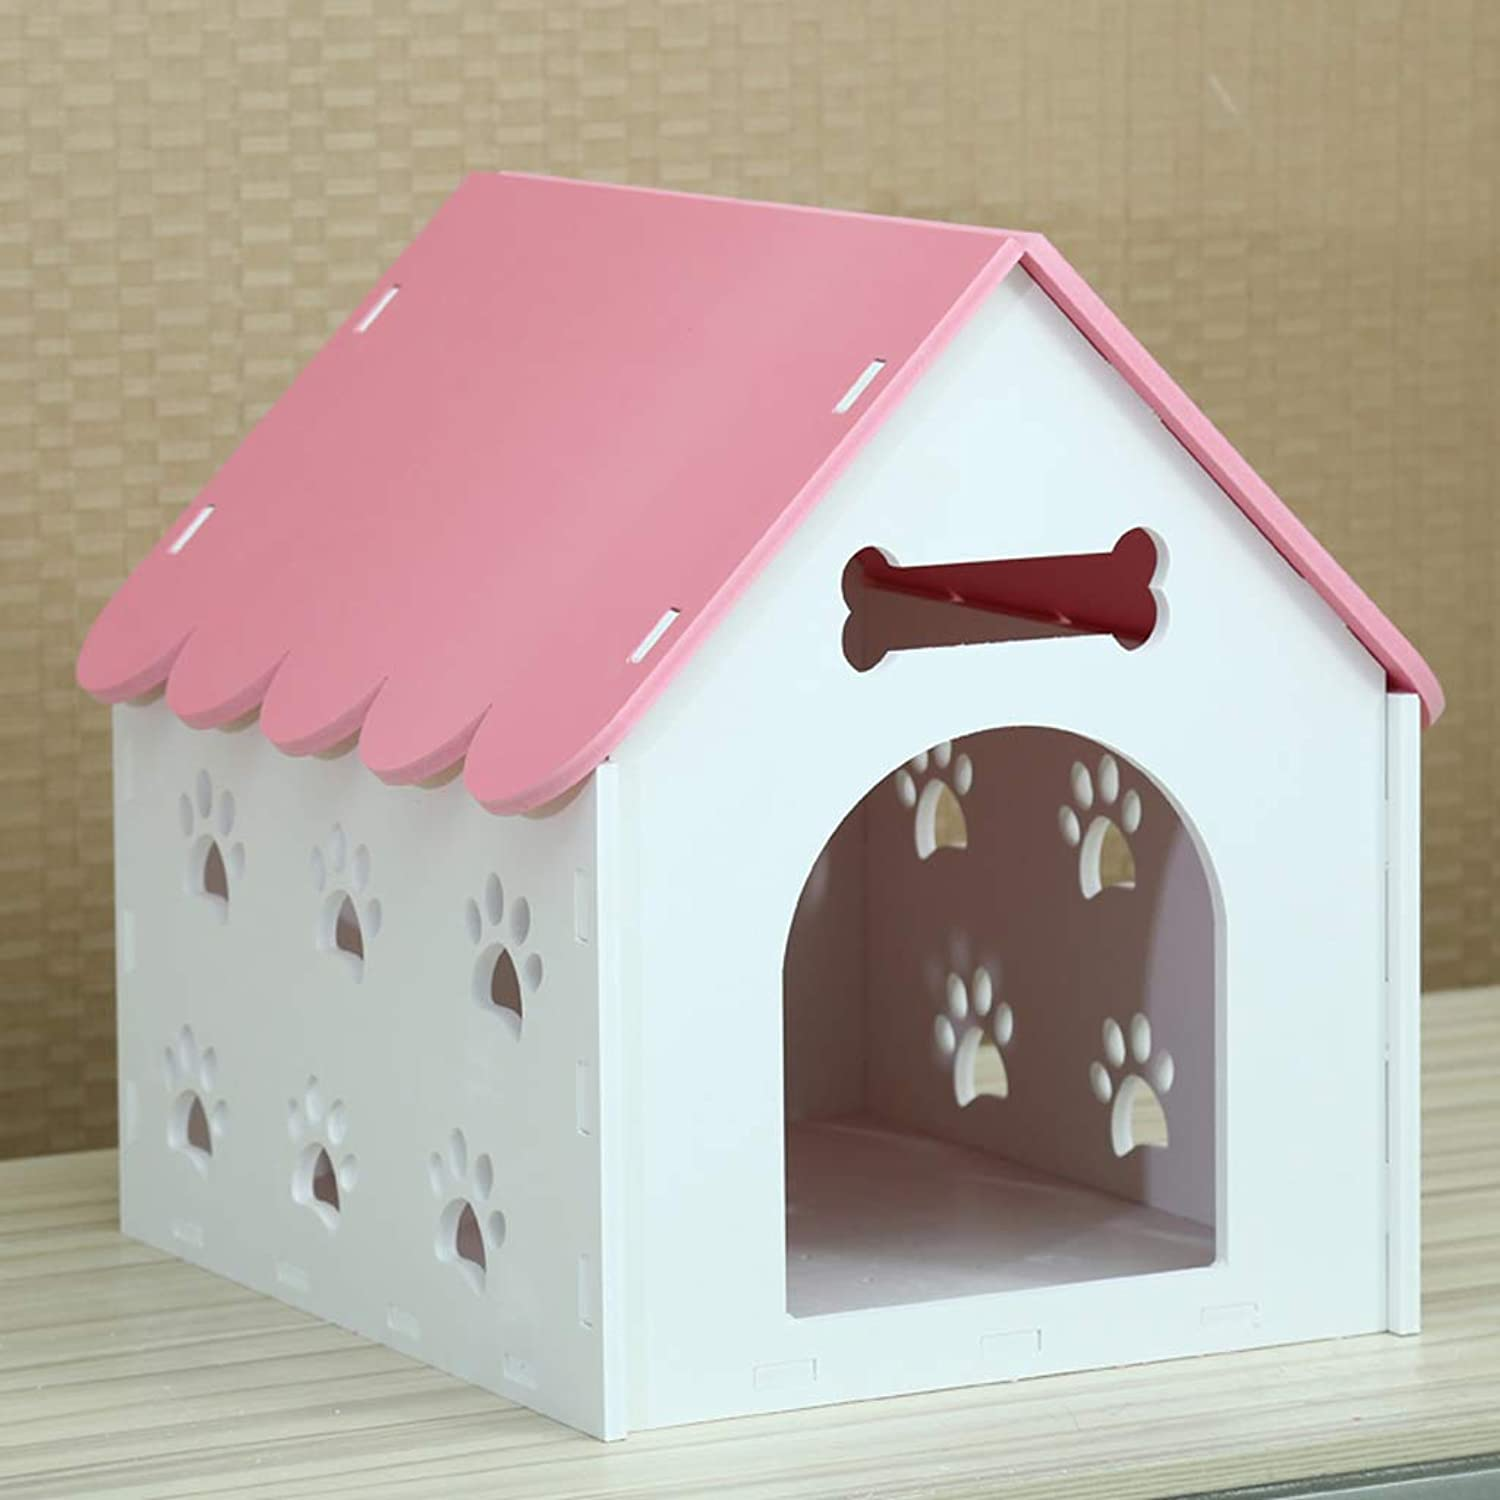 Pet nest kennel cat litter dog house indoor winter warm dog house outdoor pet nest Teddy Bomei small kennel villa  with door  pink 40  37  42cm